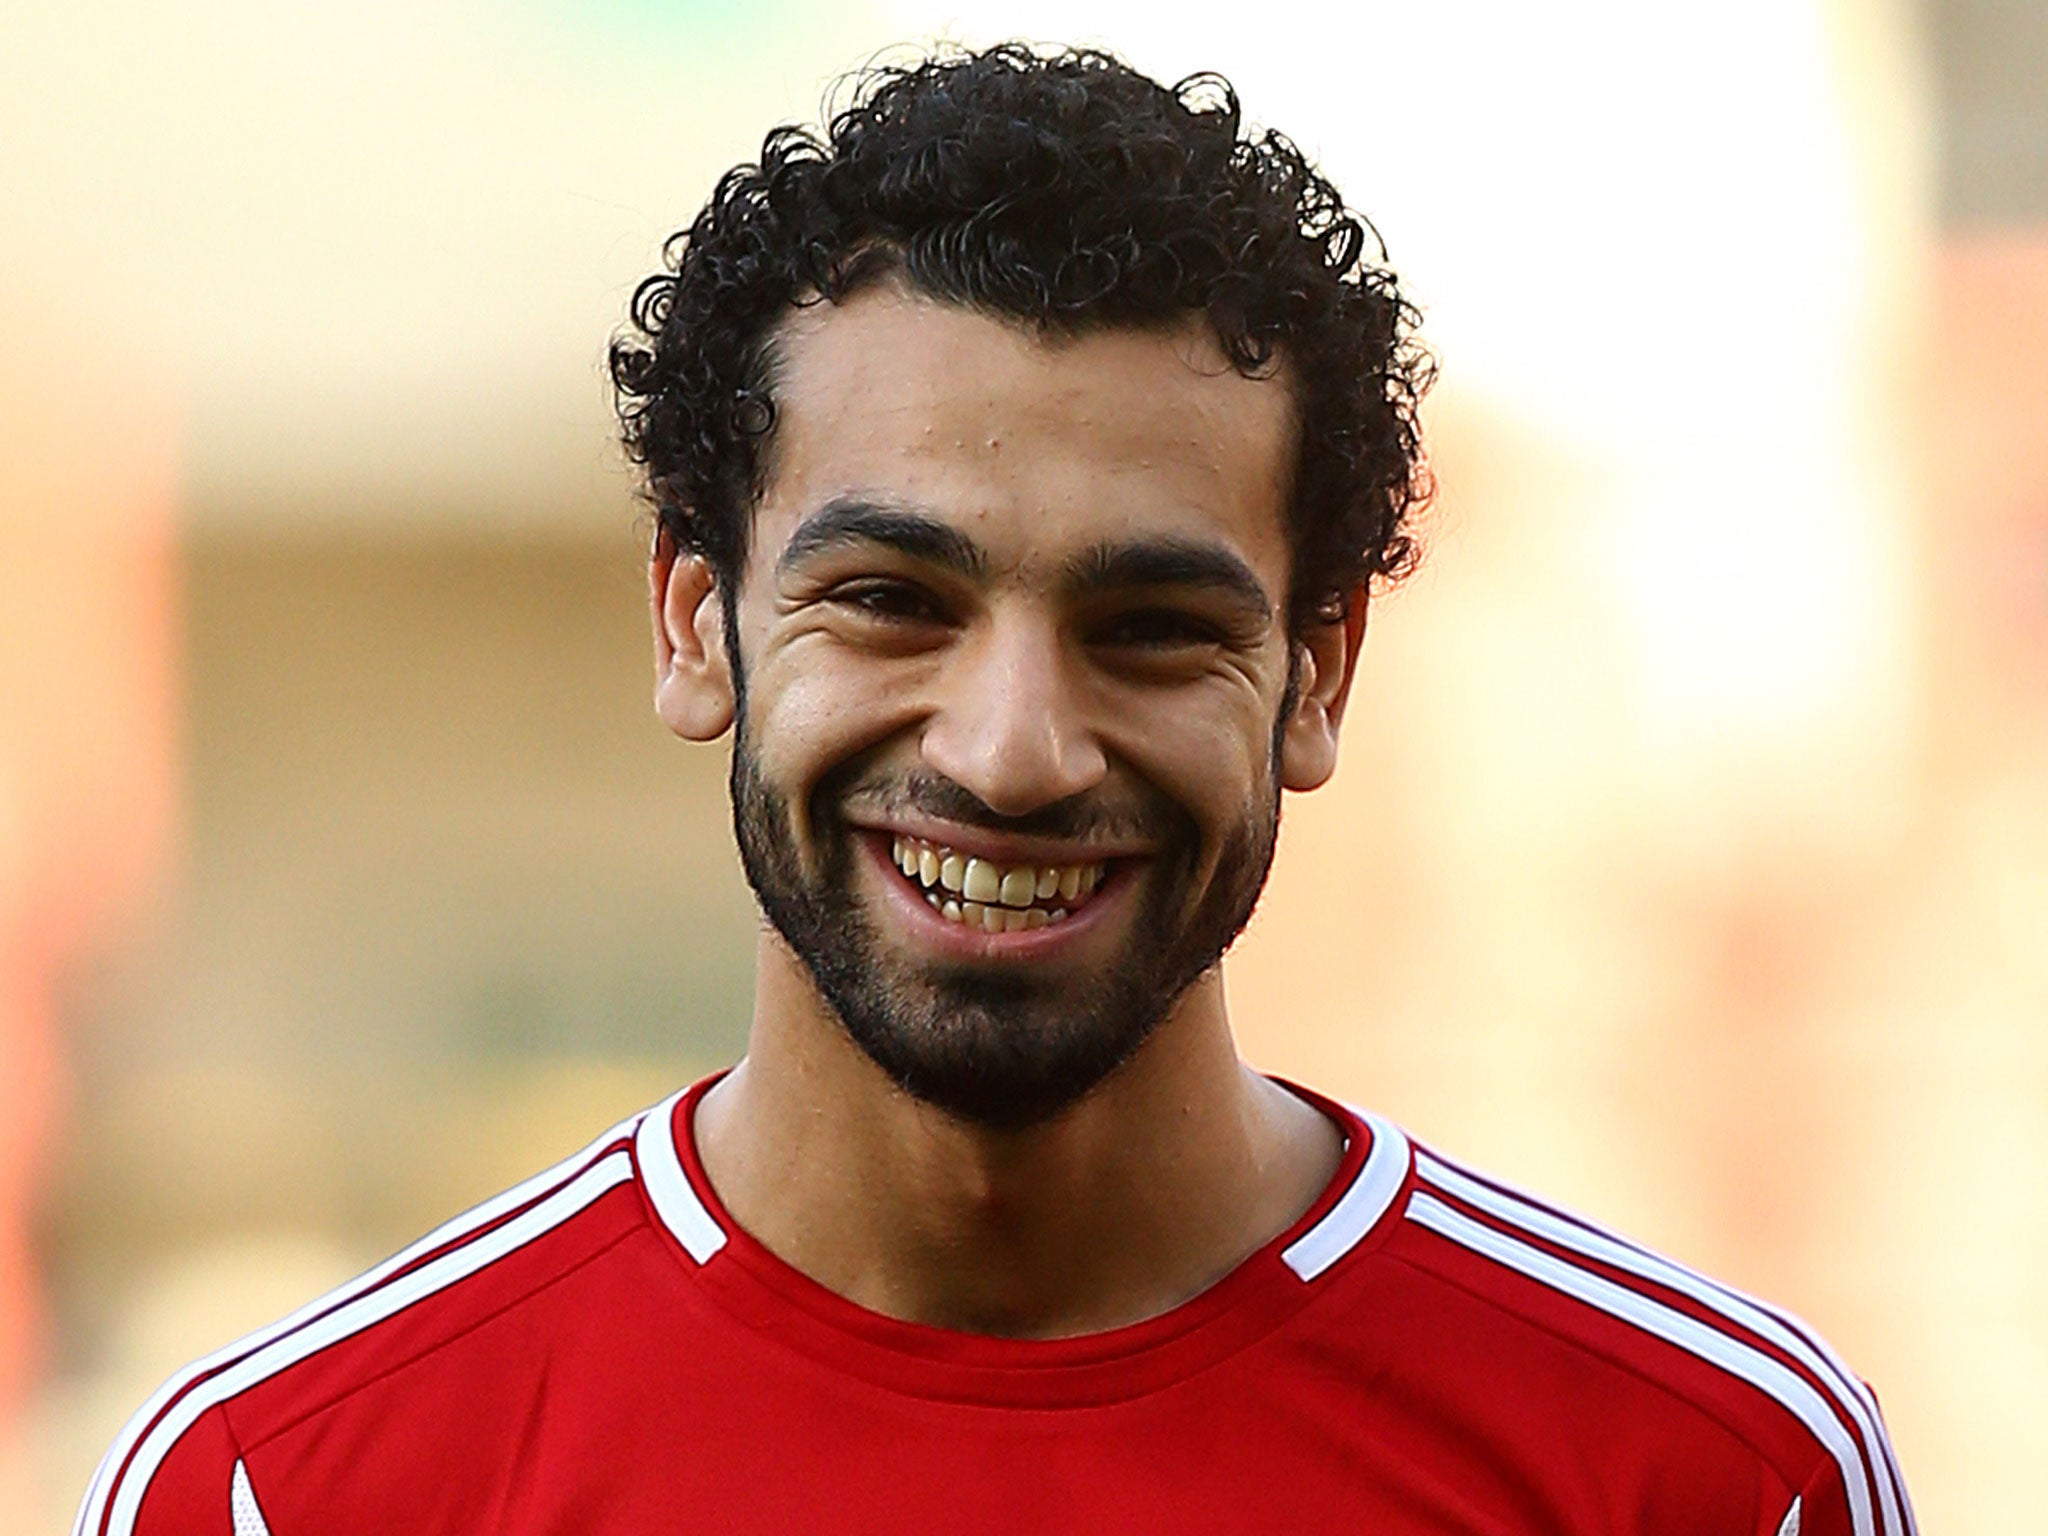 Mohamed Salah earned a 2.1 million dollar salary - leaving the net worth at 13 million in 2017